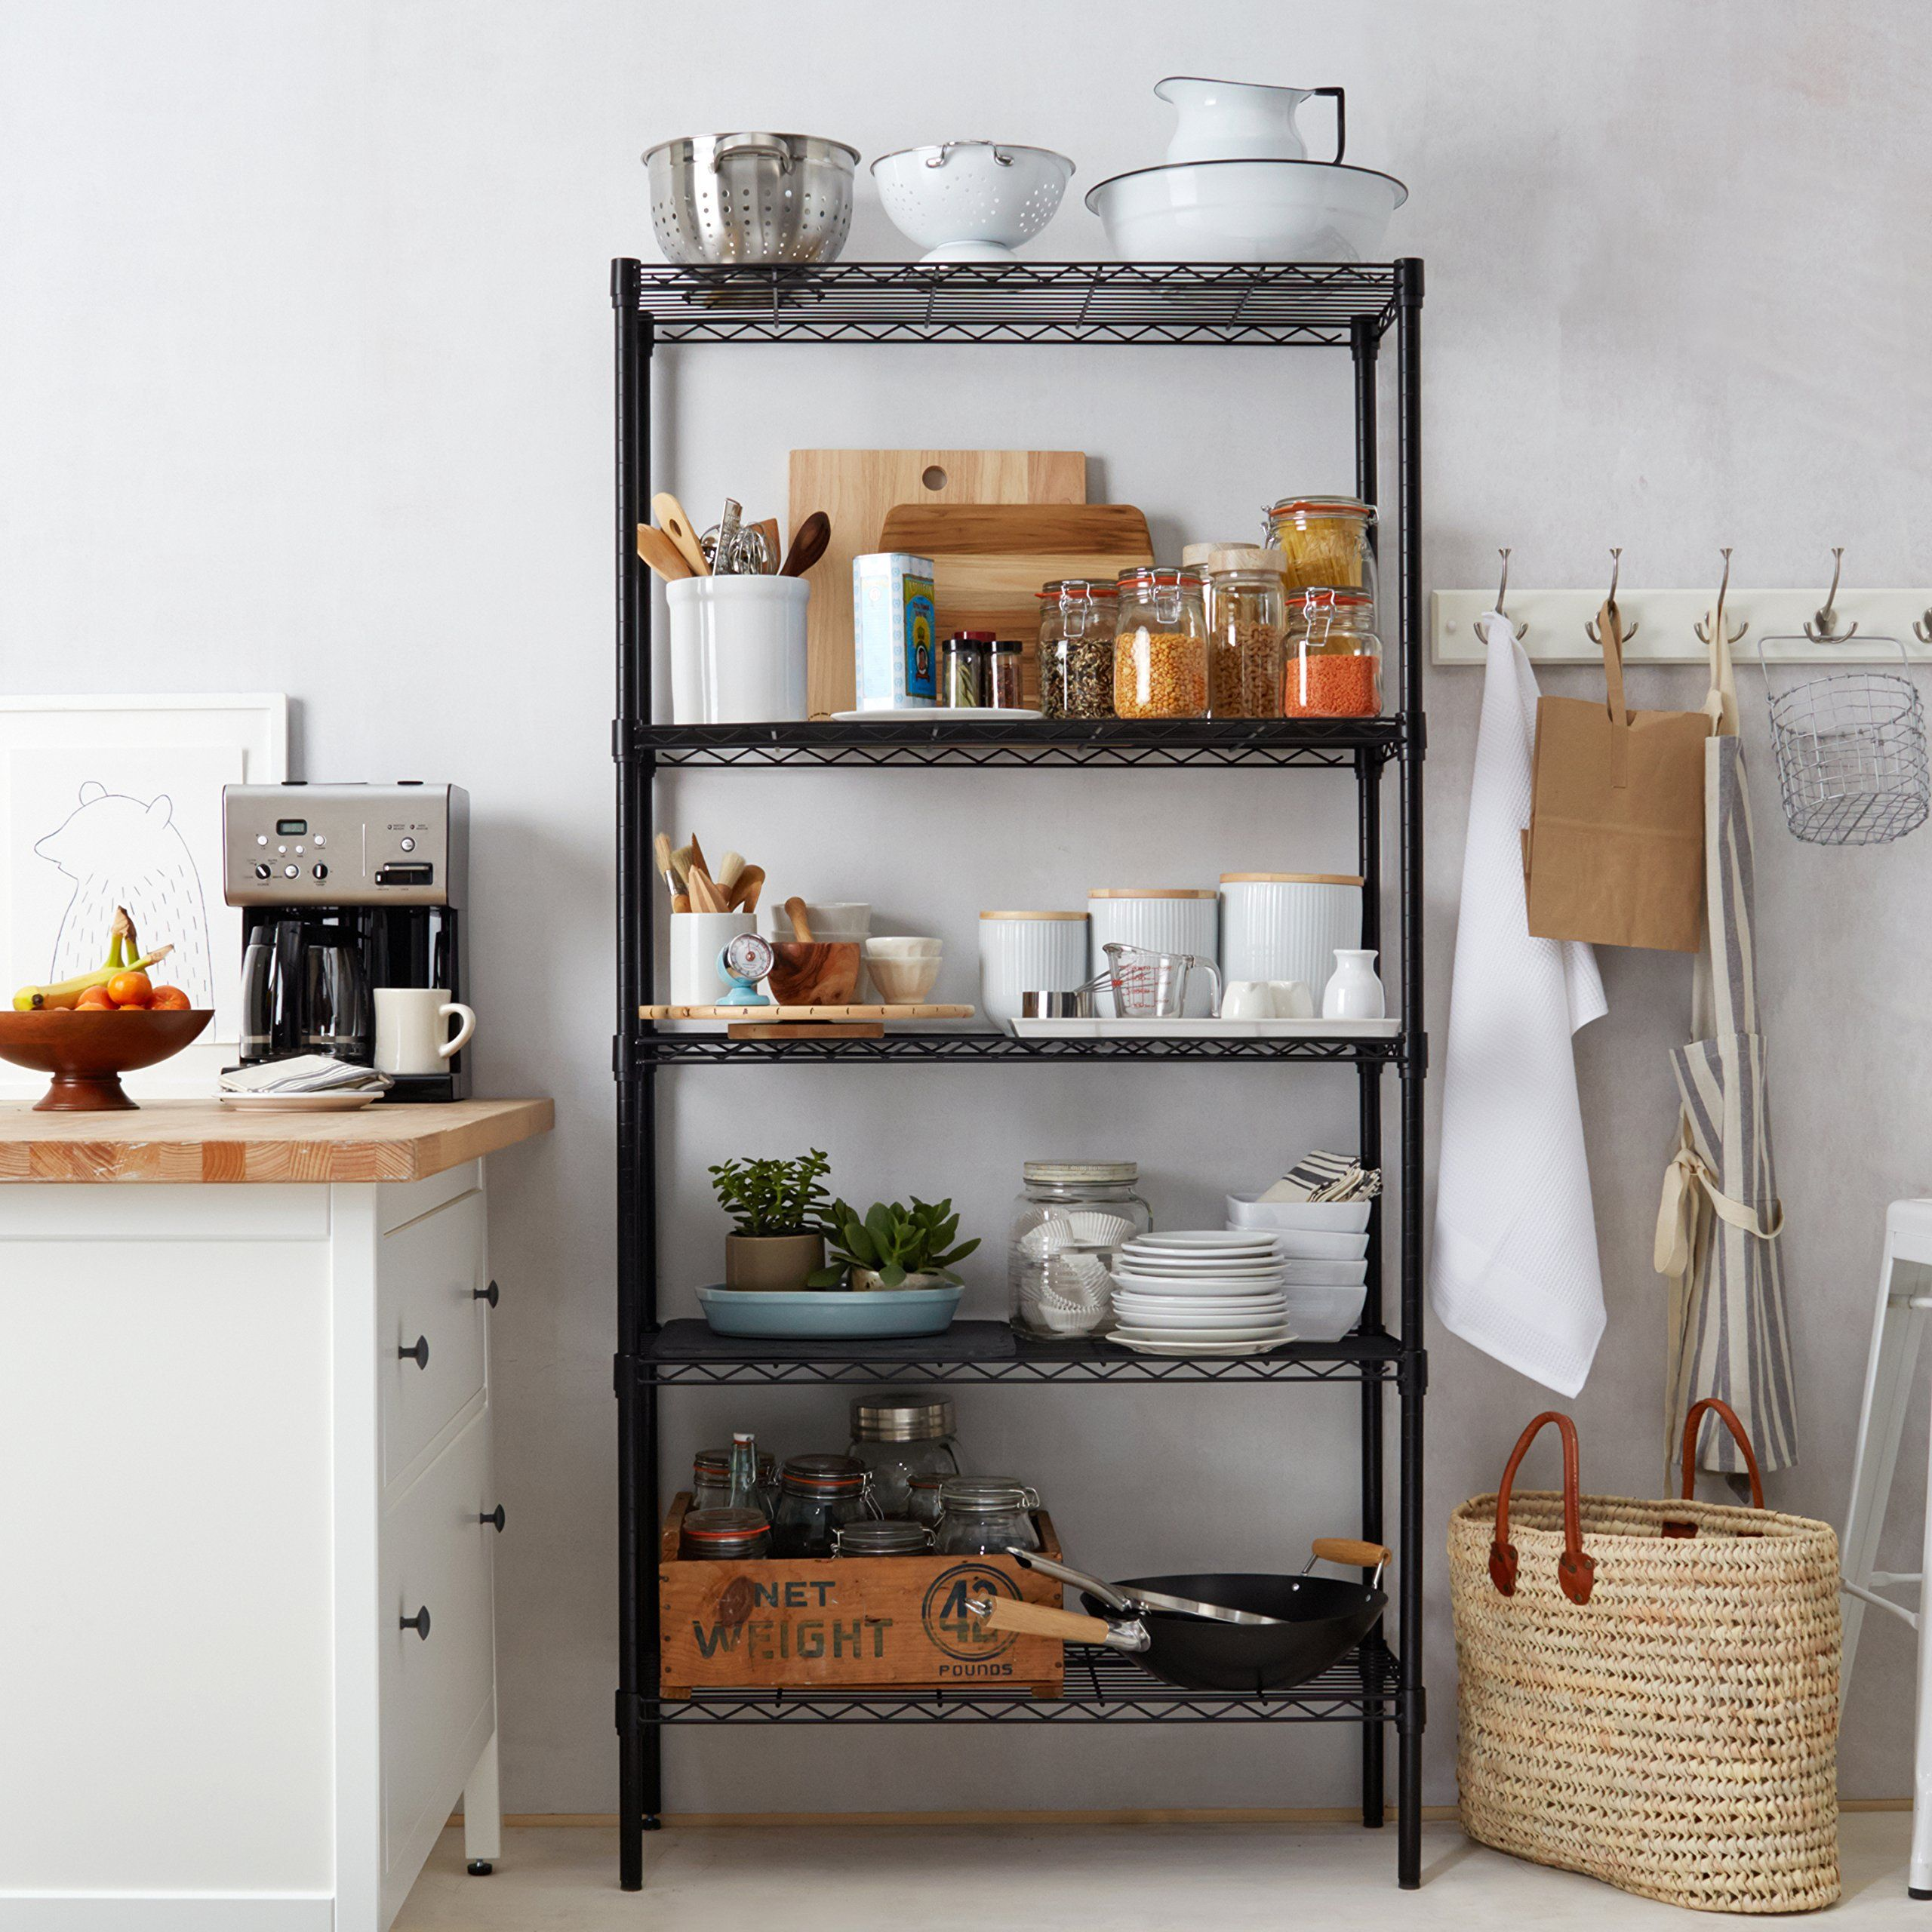 Kitchen Storage Shelf: Cute Idea To Replace White Shelves In Kitchen: Amazon.com